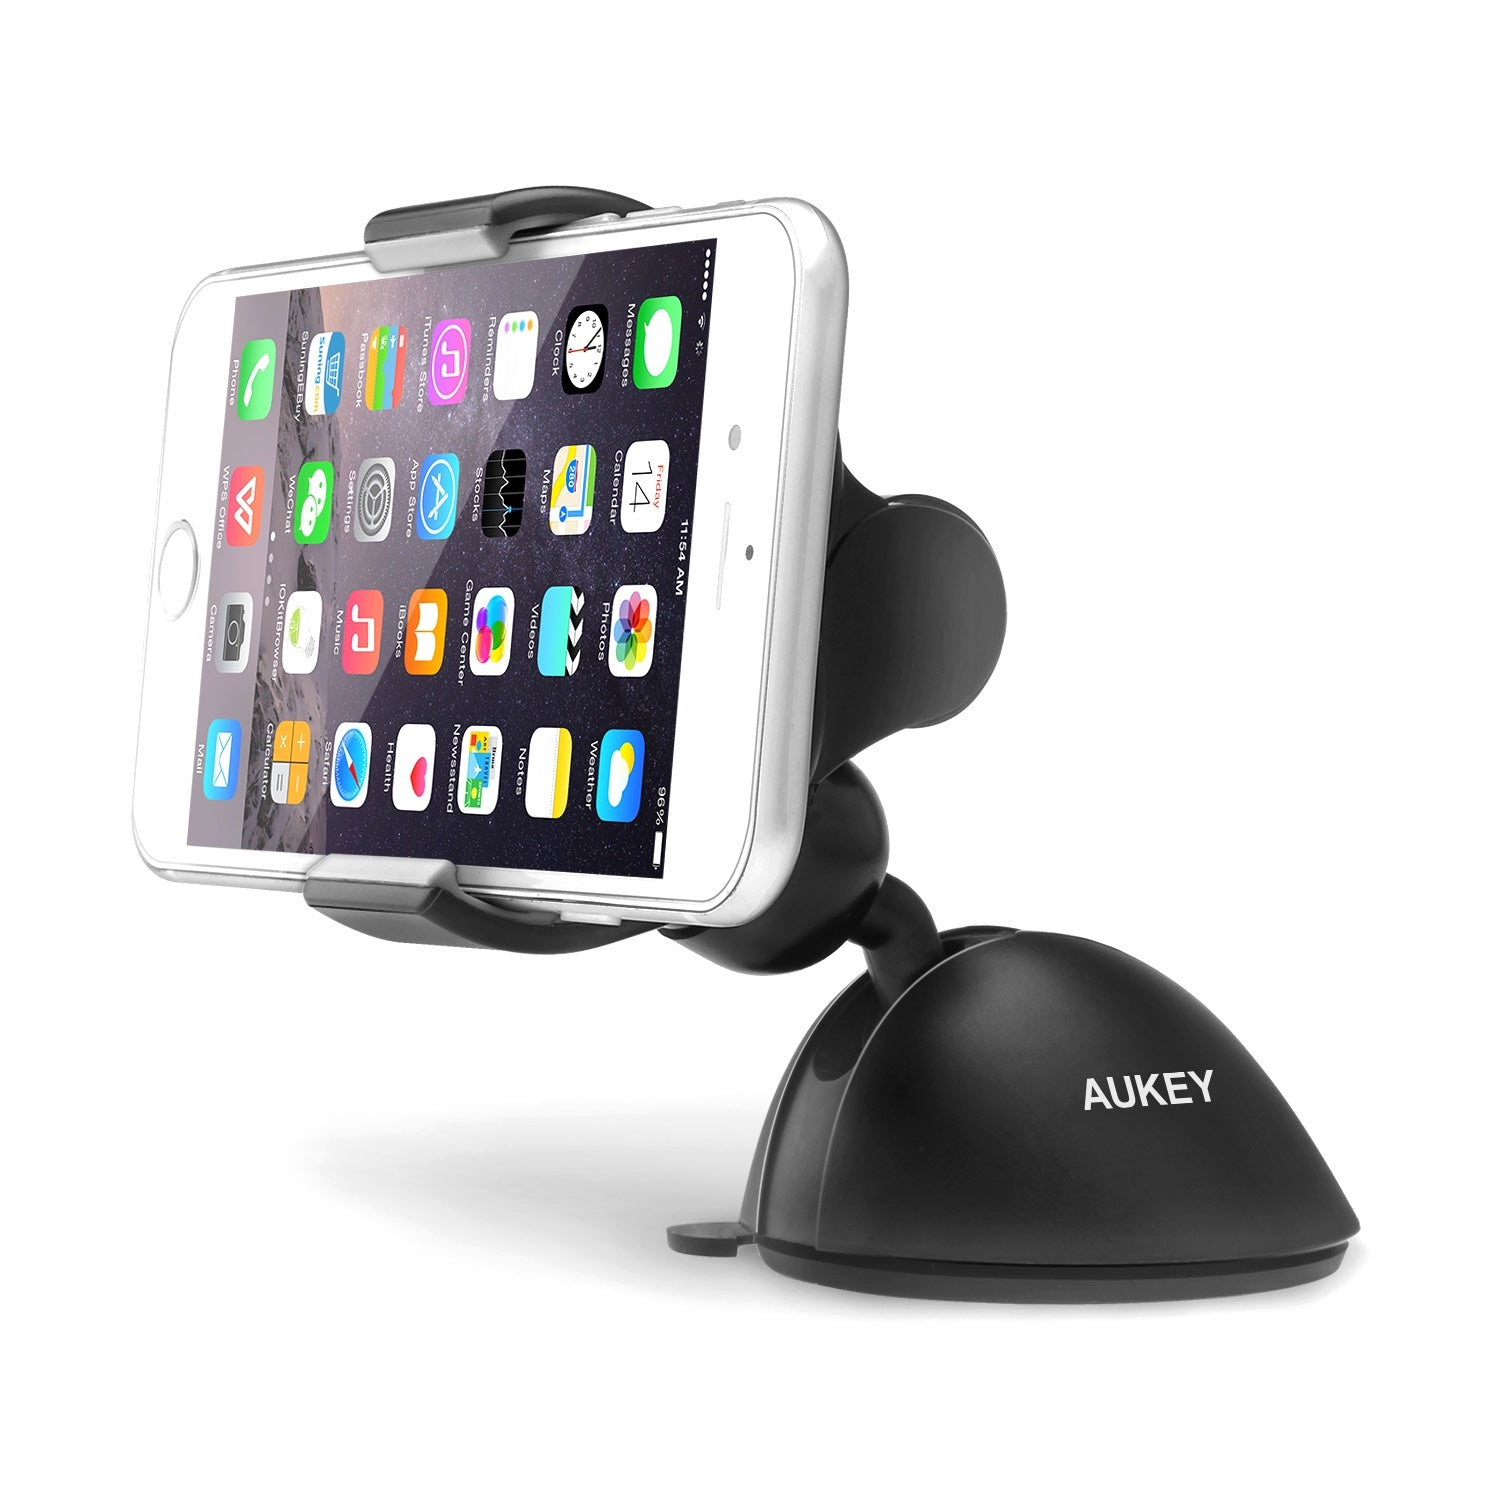 HD-C11 Windshield Dashboard 360 Degree Rotating Universal Car Mount Holder